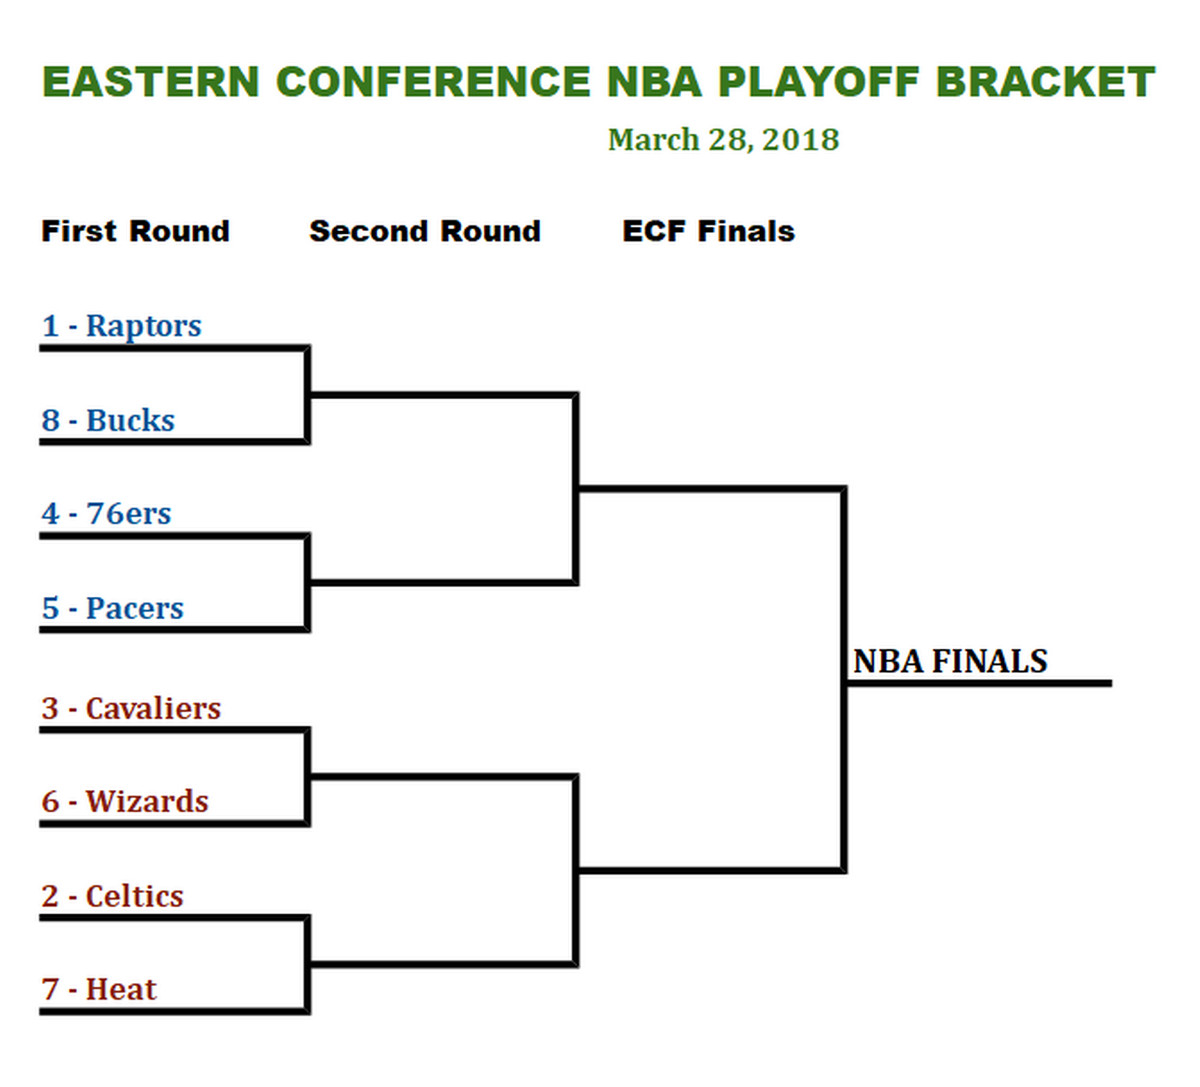 Eastern Conference Playoff Bracket: where the Miami Heat stand as of this afternoon - Hot Hot Hoops